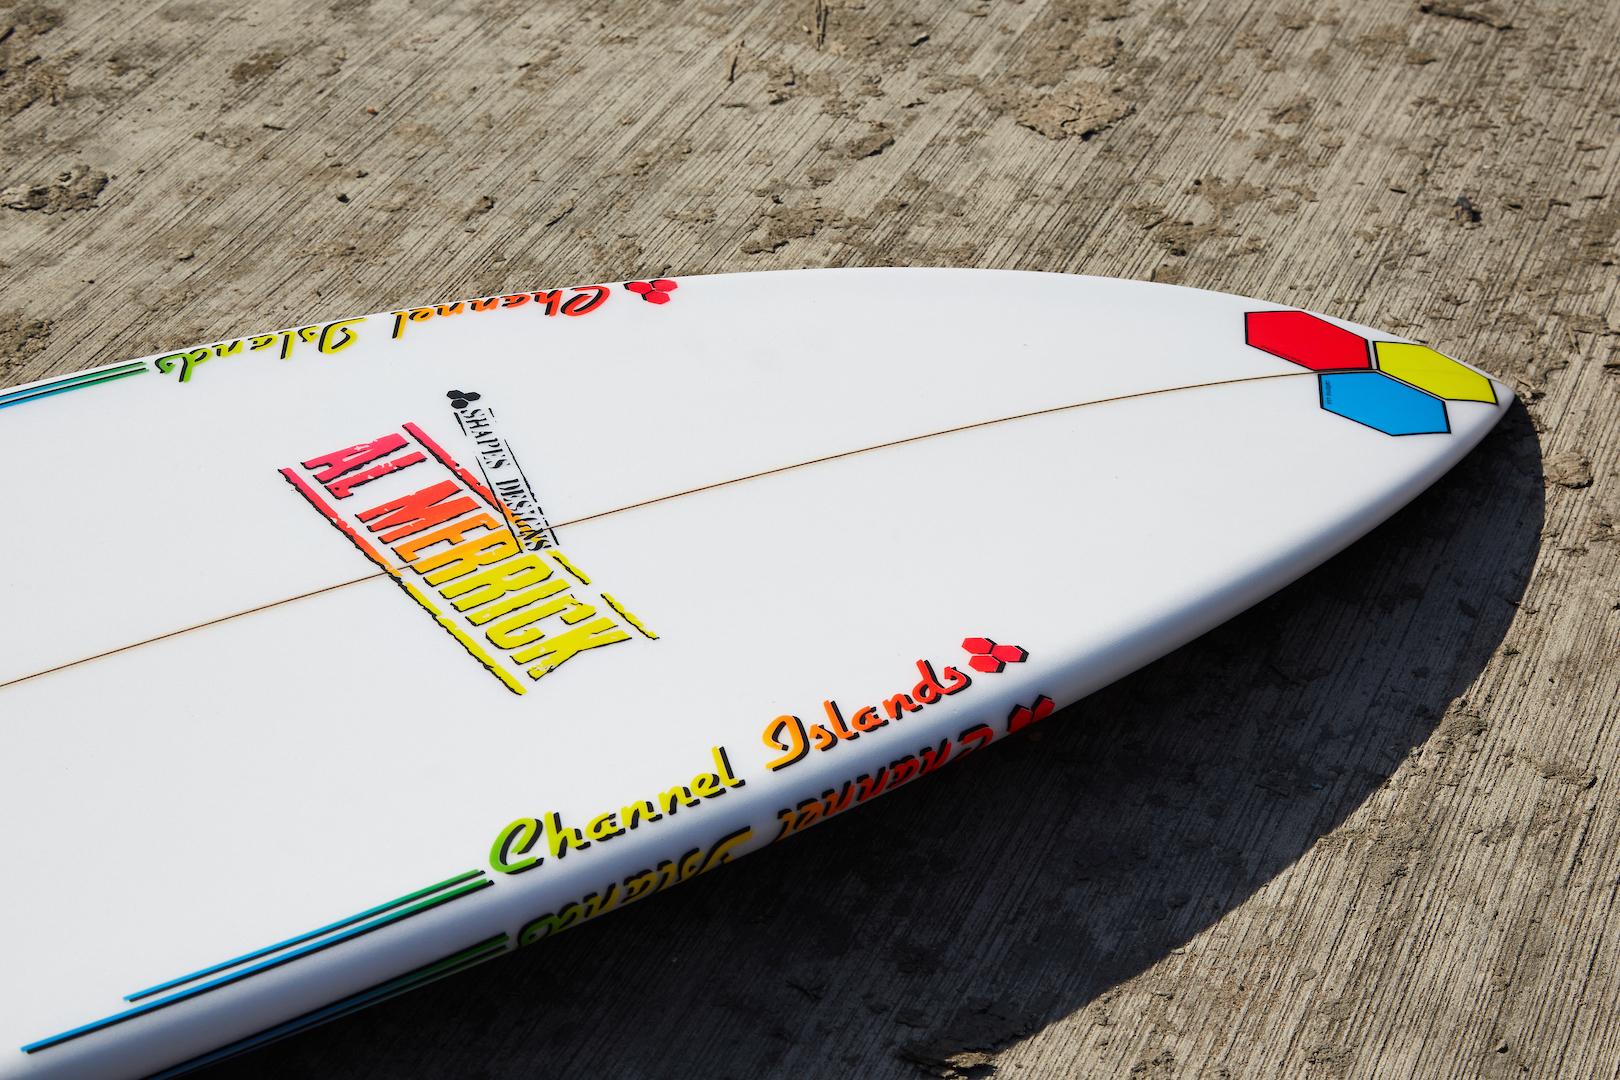 Channel Islands decals on the FishBeard surfboard, as reviewed by Angus Scotney in the Test Tub surfboard review